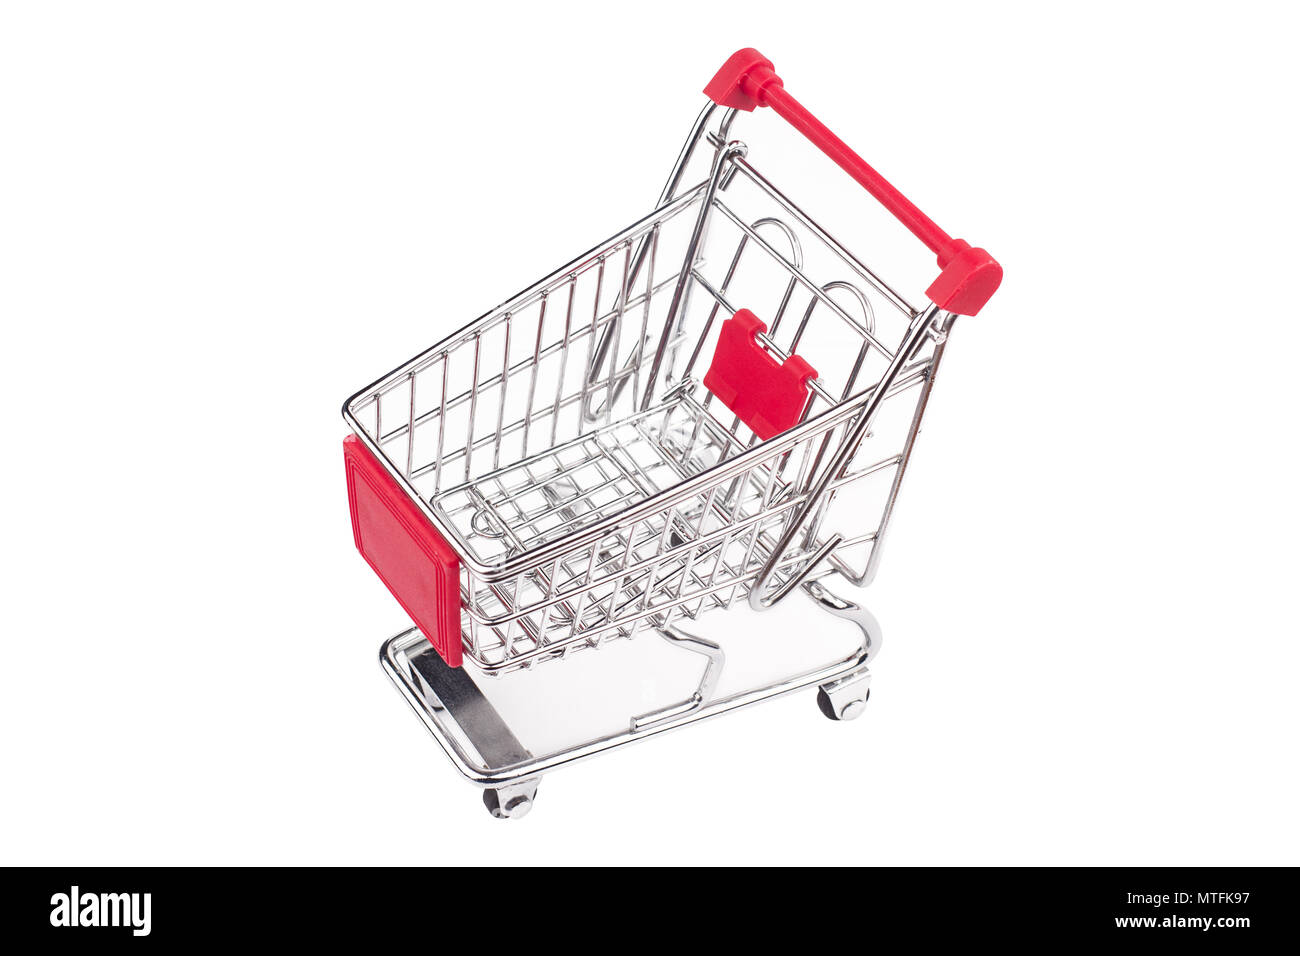 top view closeup of shiny aluminum empty miniature shopping supermarket cart with red handle isolated on white background Stock Photo